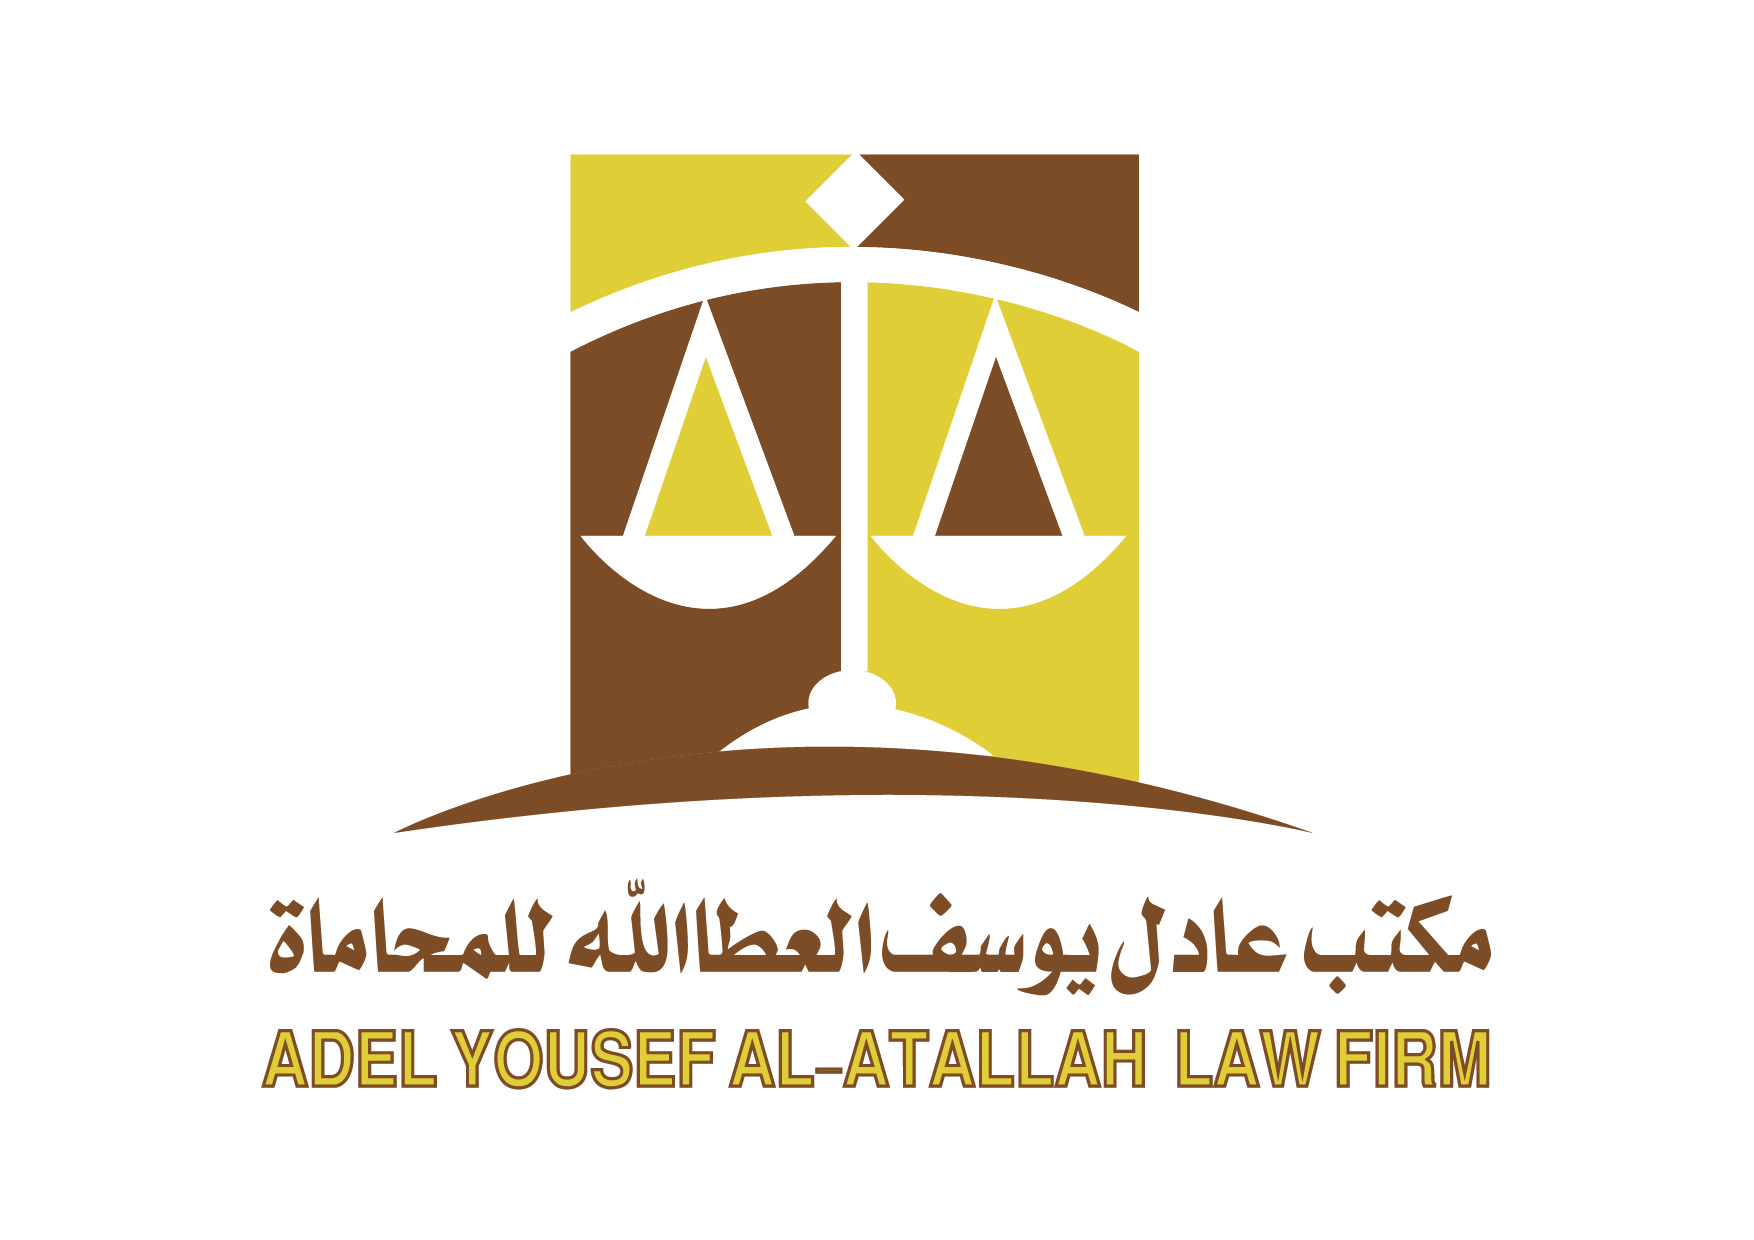 Adel Yousef Alatallah Law Firm